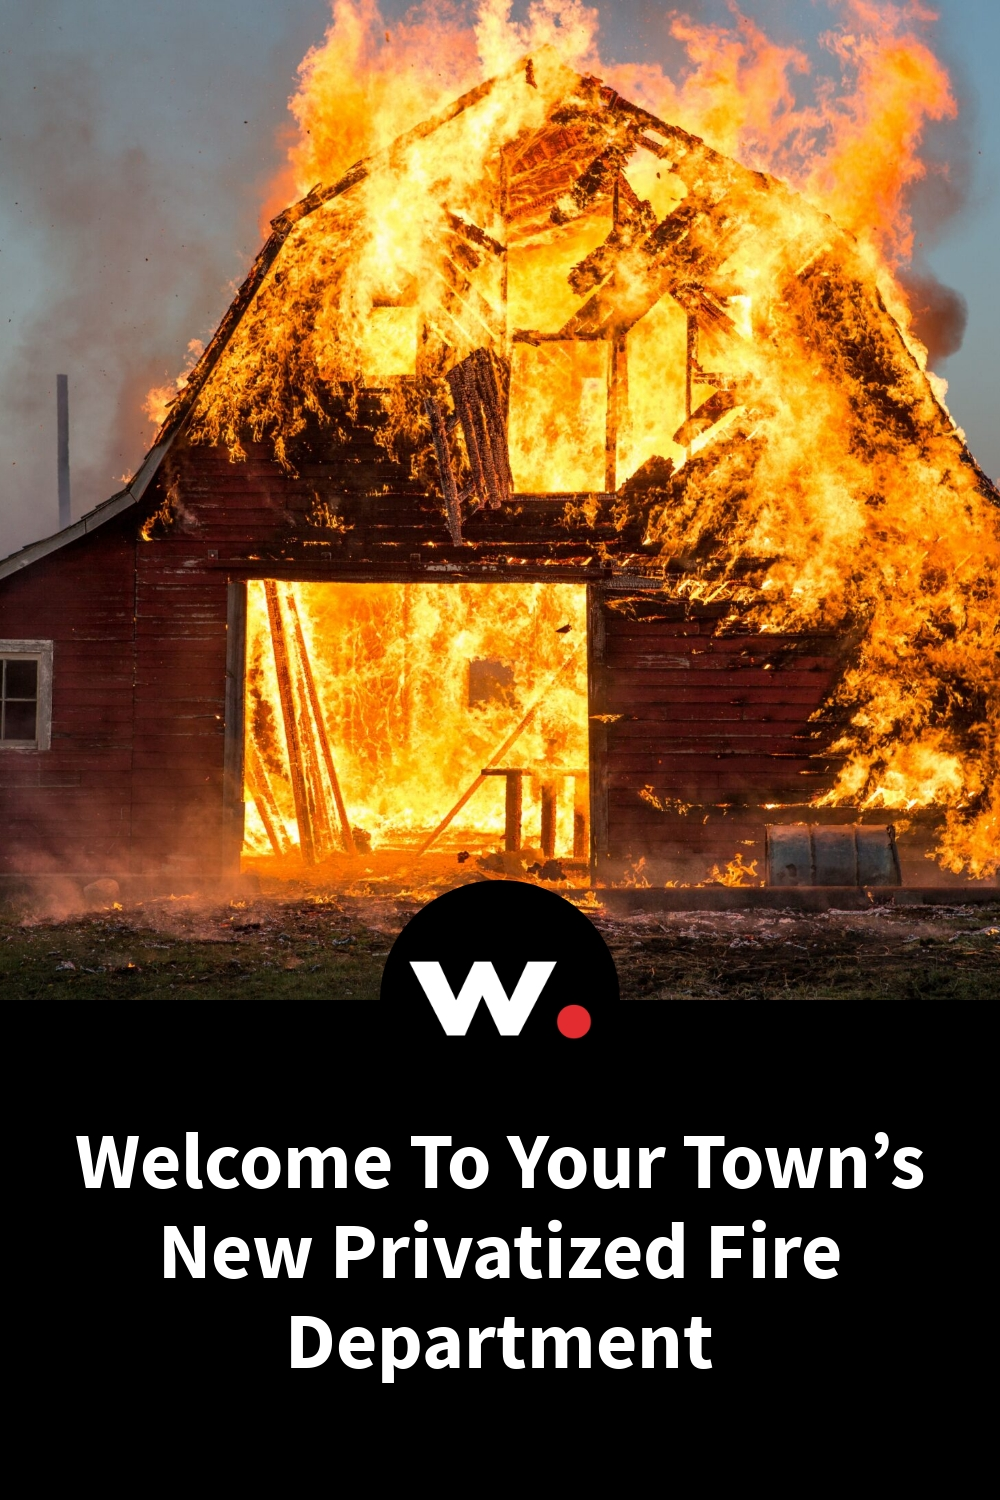 Welcome To Your Town's New Privatized Fire Department